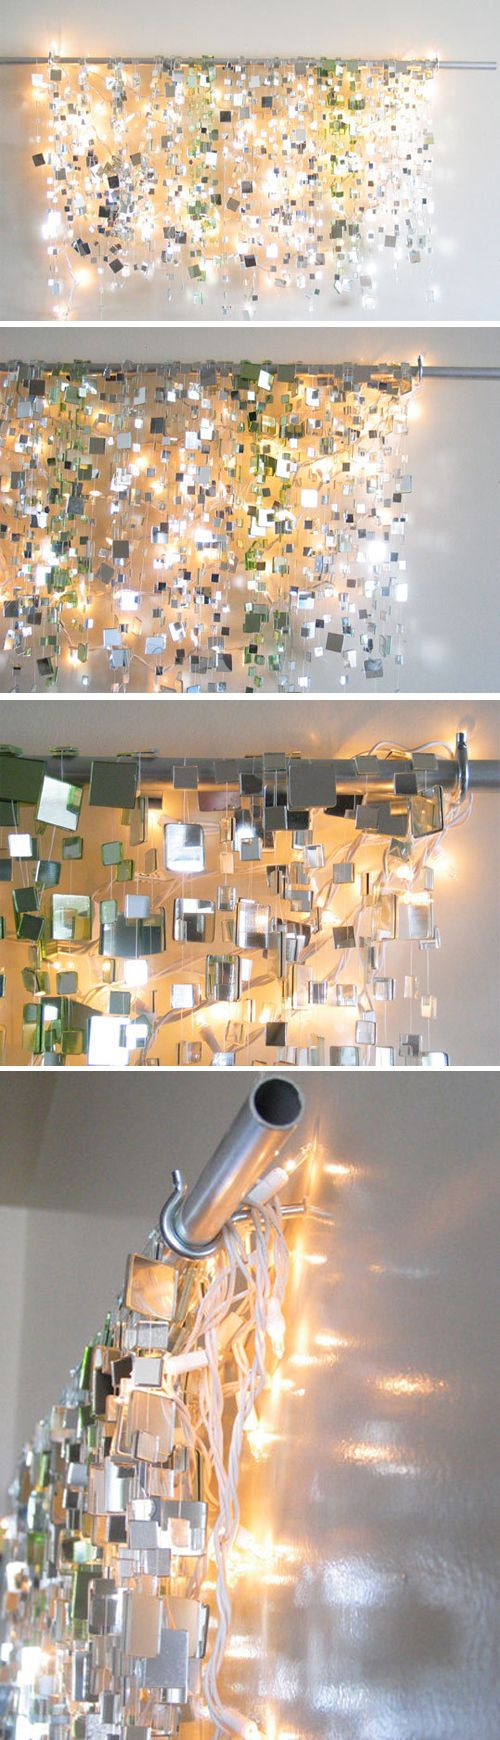 Small mirror tiles glued to fishing line with  lights behind. This is fantastic.: Hanging Mirror, Mirror Decor, Lights Mirror, Small Mirror, Tile Glu, Fairies Lights, Mirror Lights, Mirror Tile, Mirror Garlands